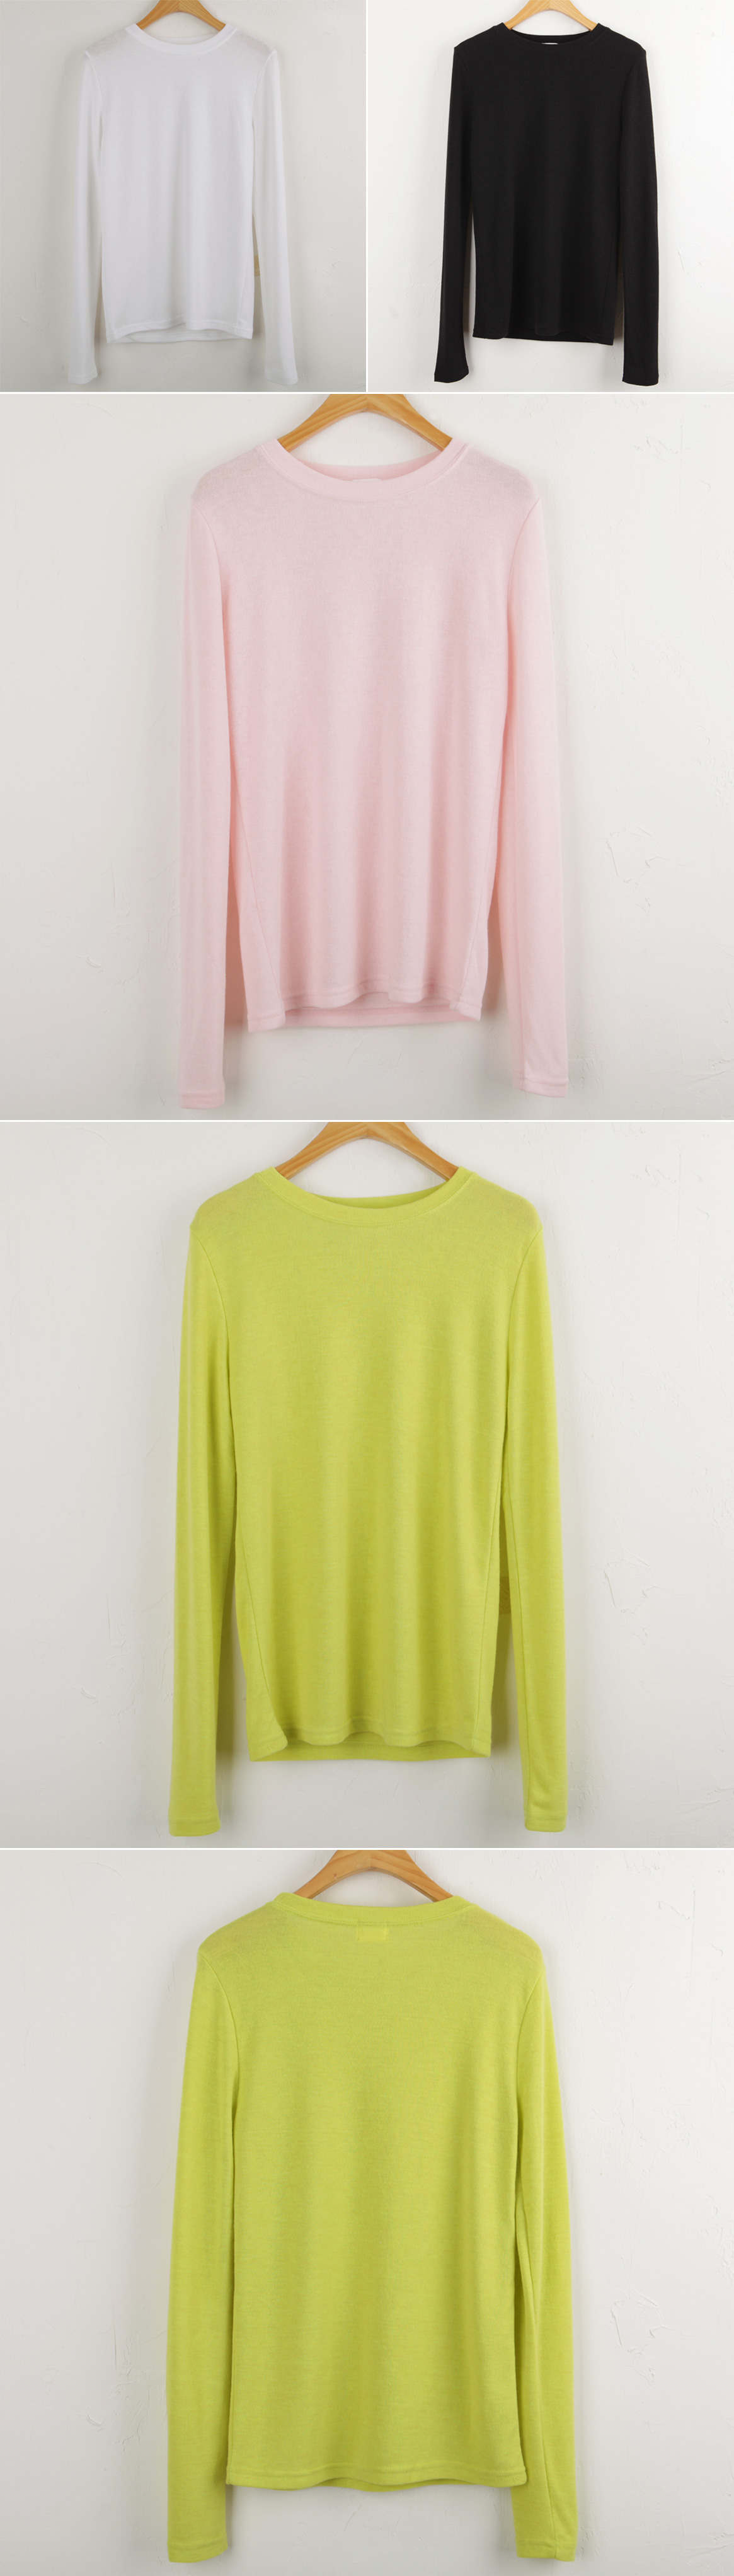 Luxurious tee touch wearing color spring